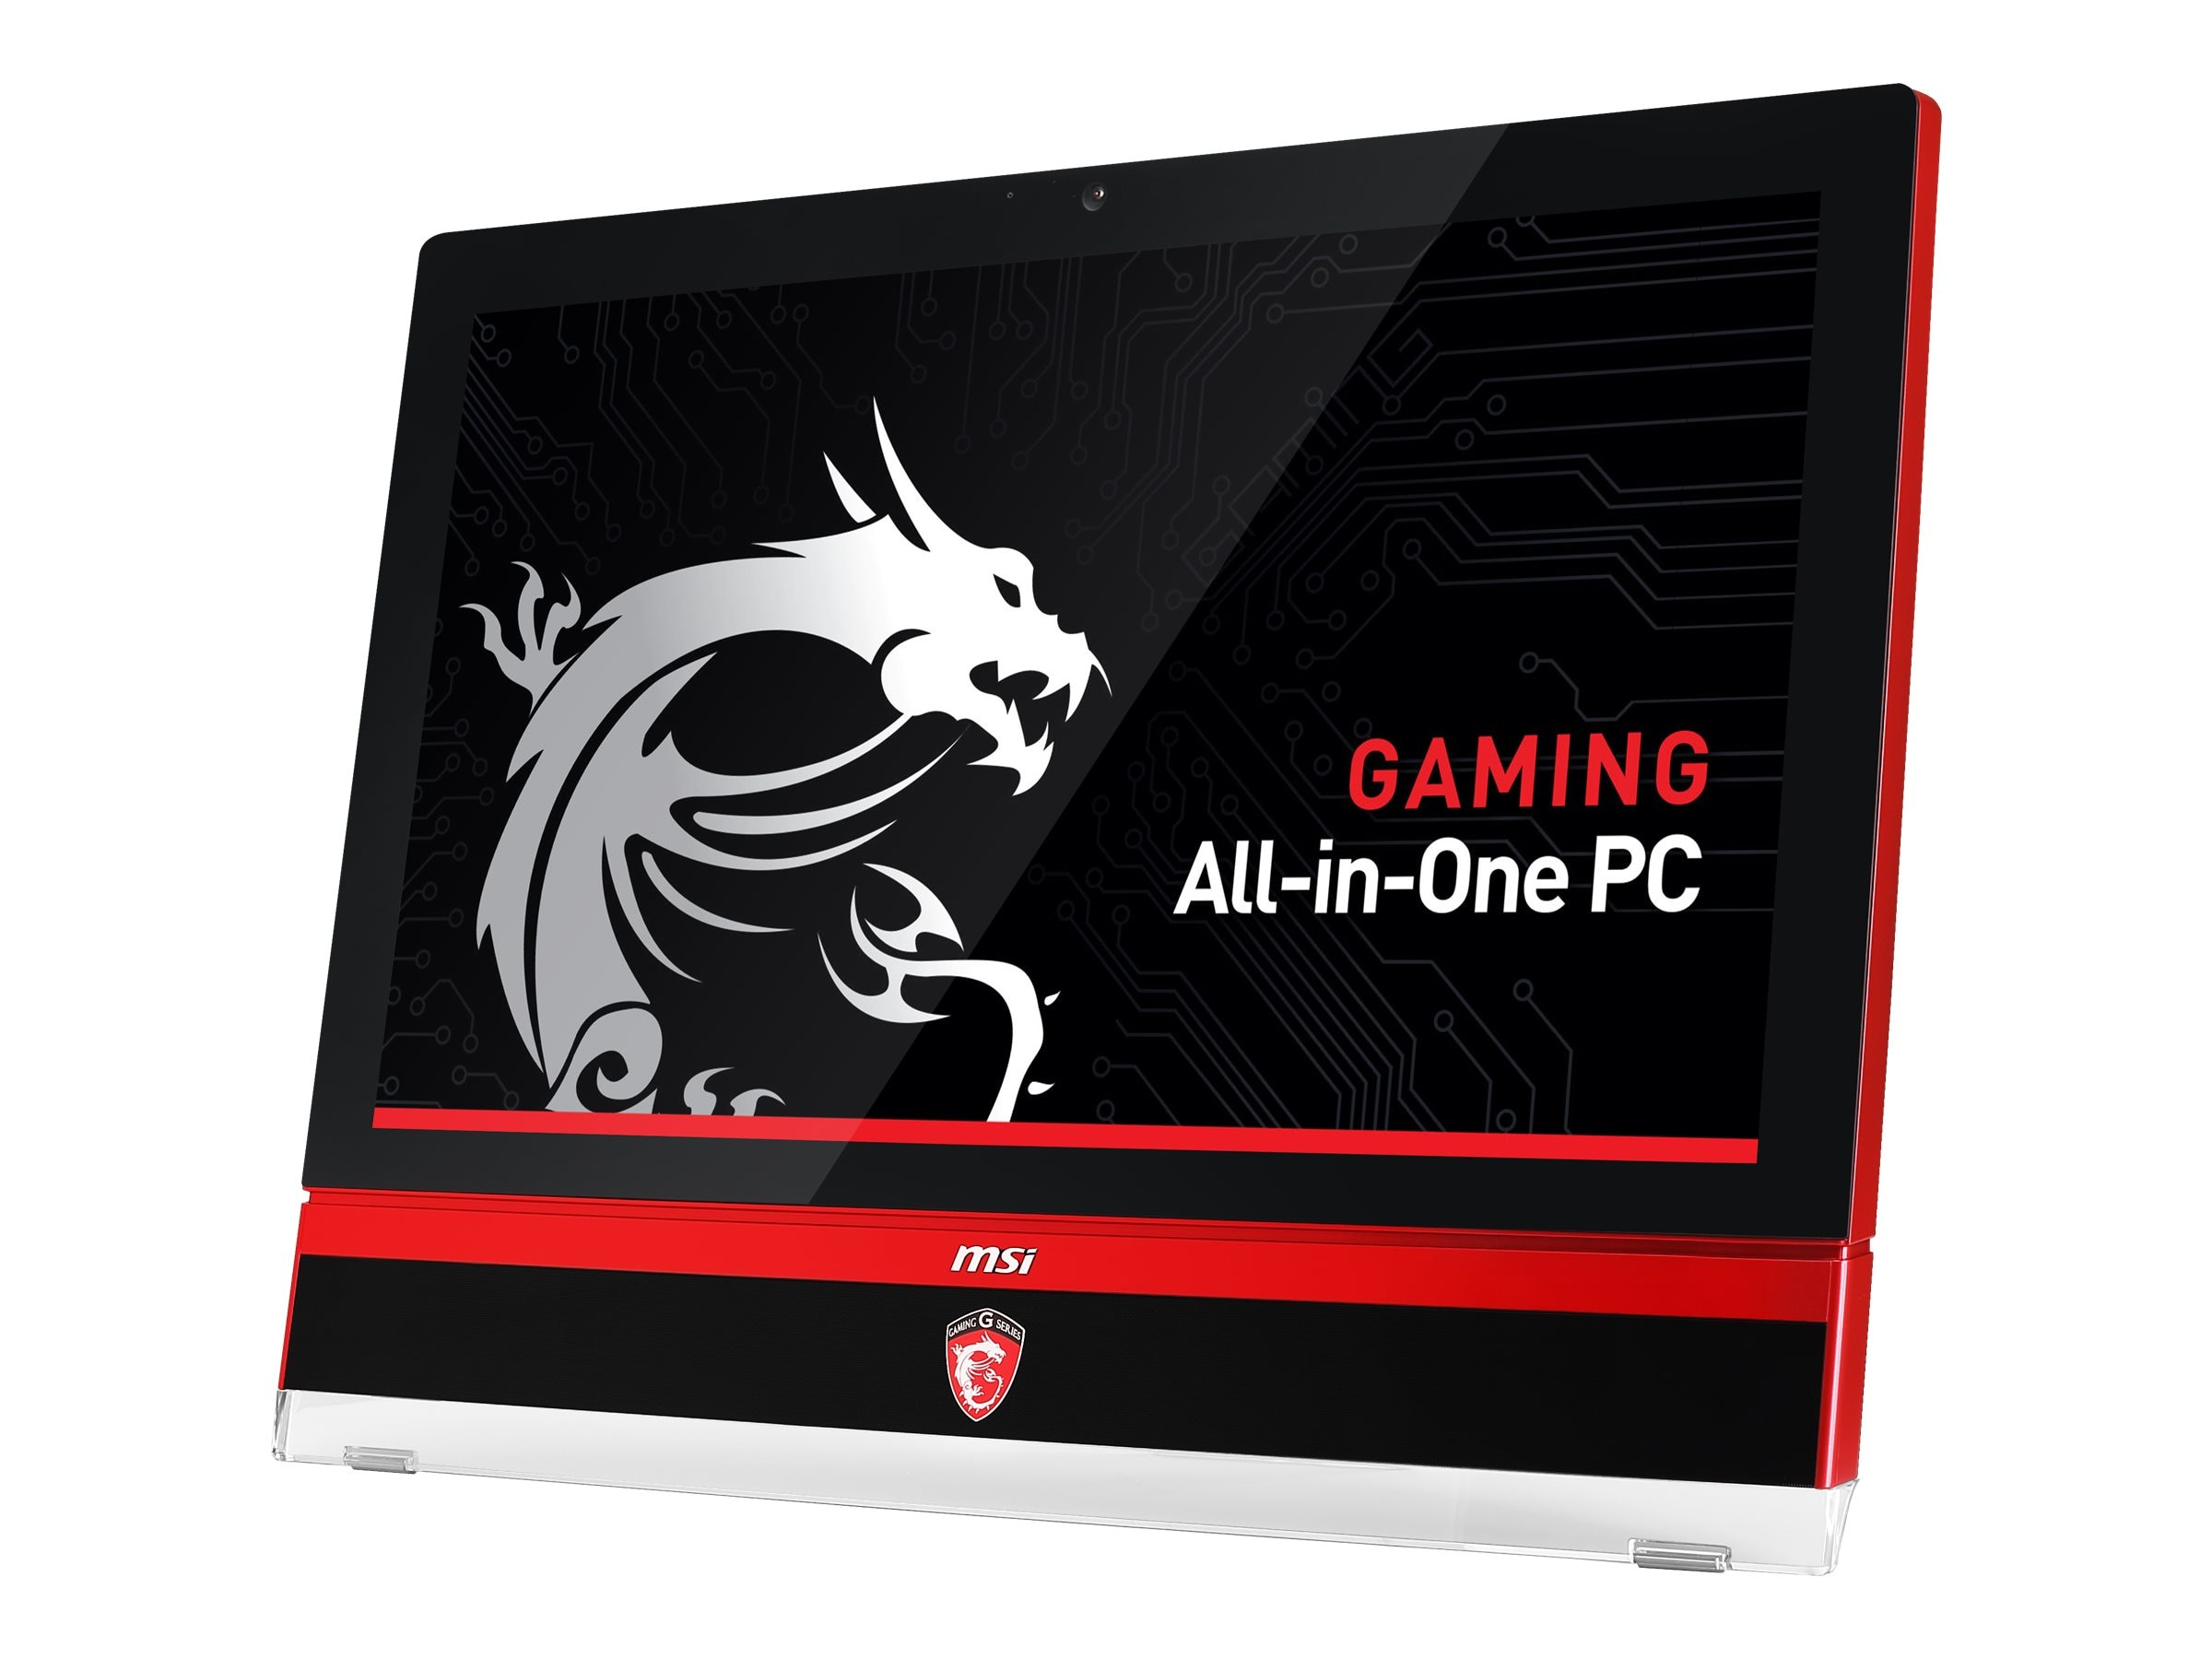 MSI AG270 2QC-045US AIO Core i7-4710 GTX970M 27 MT W8.1, Black Red, AG270 2QC-045US, 17933632, Desktops - All-in-One